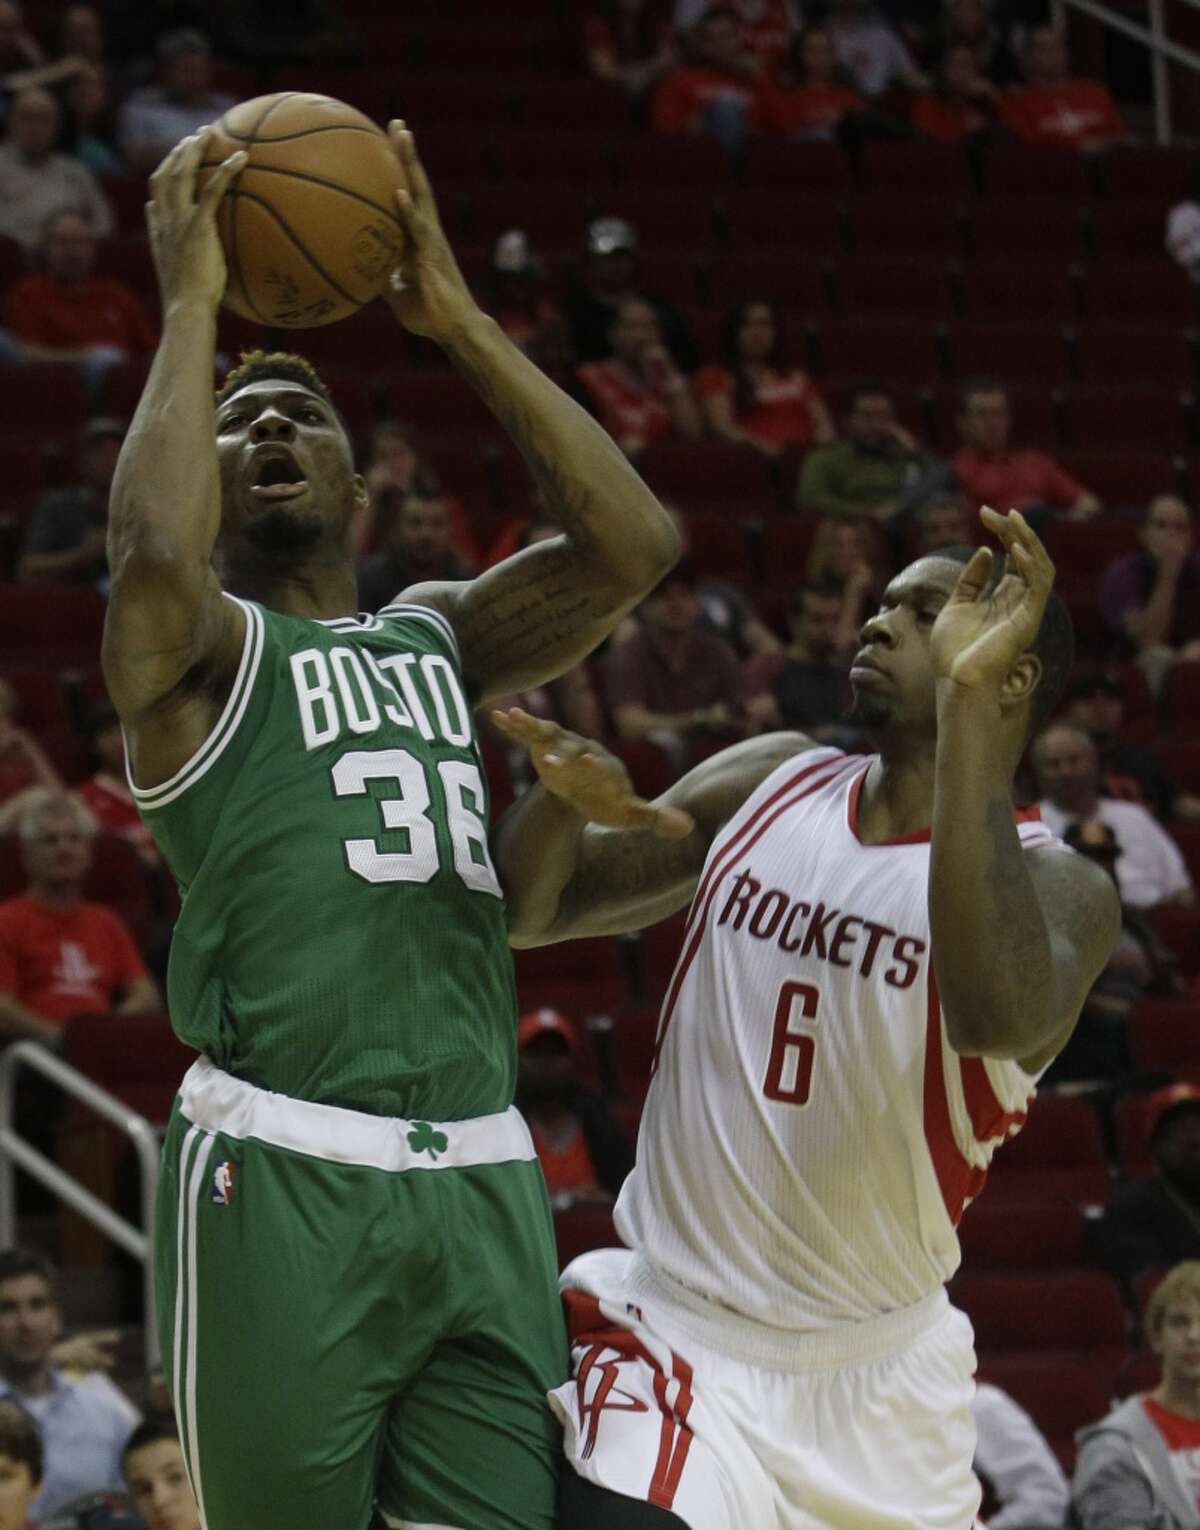 Boston Celtics Marcus Smart is fouled by Houston Rockets Terrence Jones during the first half of NBA game at Toyota Center Monday, Nov. 16, 2015, in Houston. ( Melissa Phillip / Houston Chronicle )